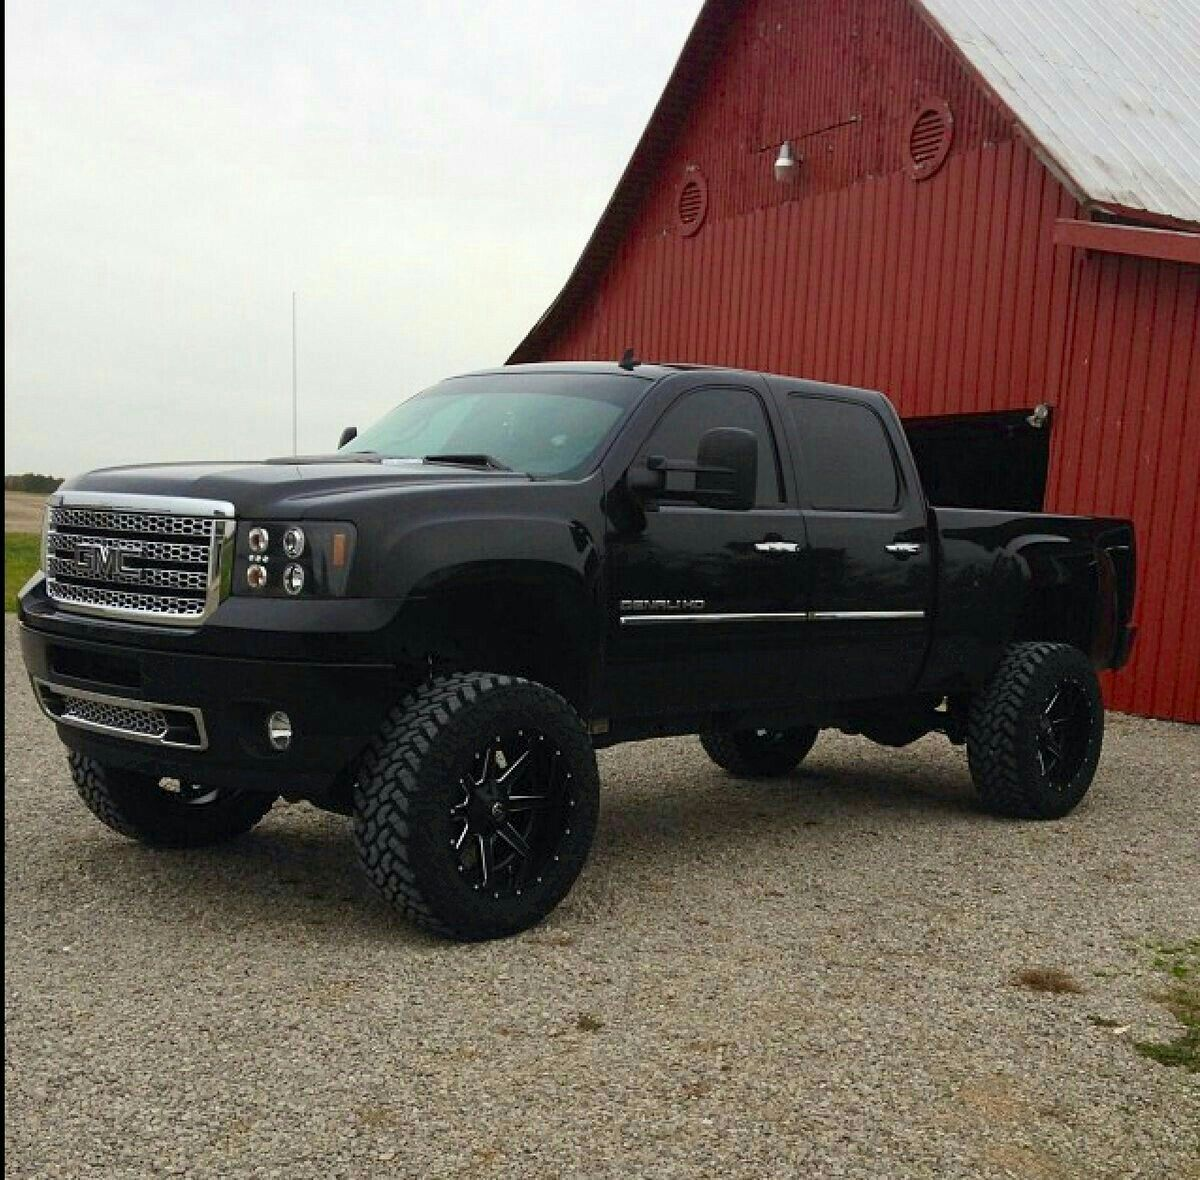 Gmc Denali 1500 For Sale: Duramax GMC Crew Cab With Lift Kit